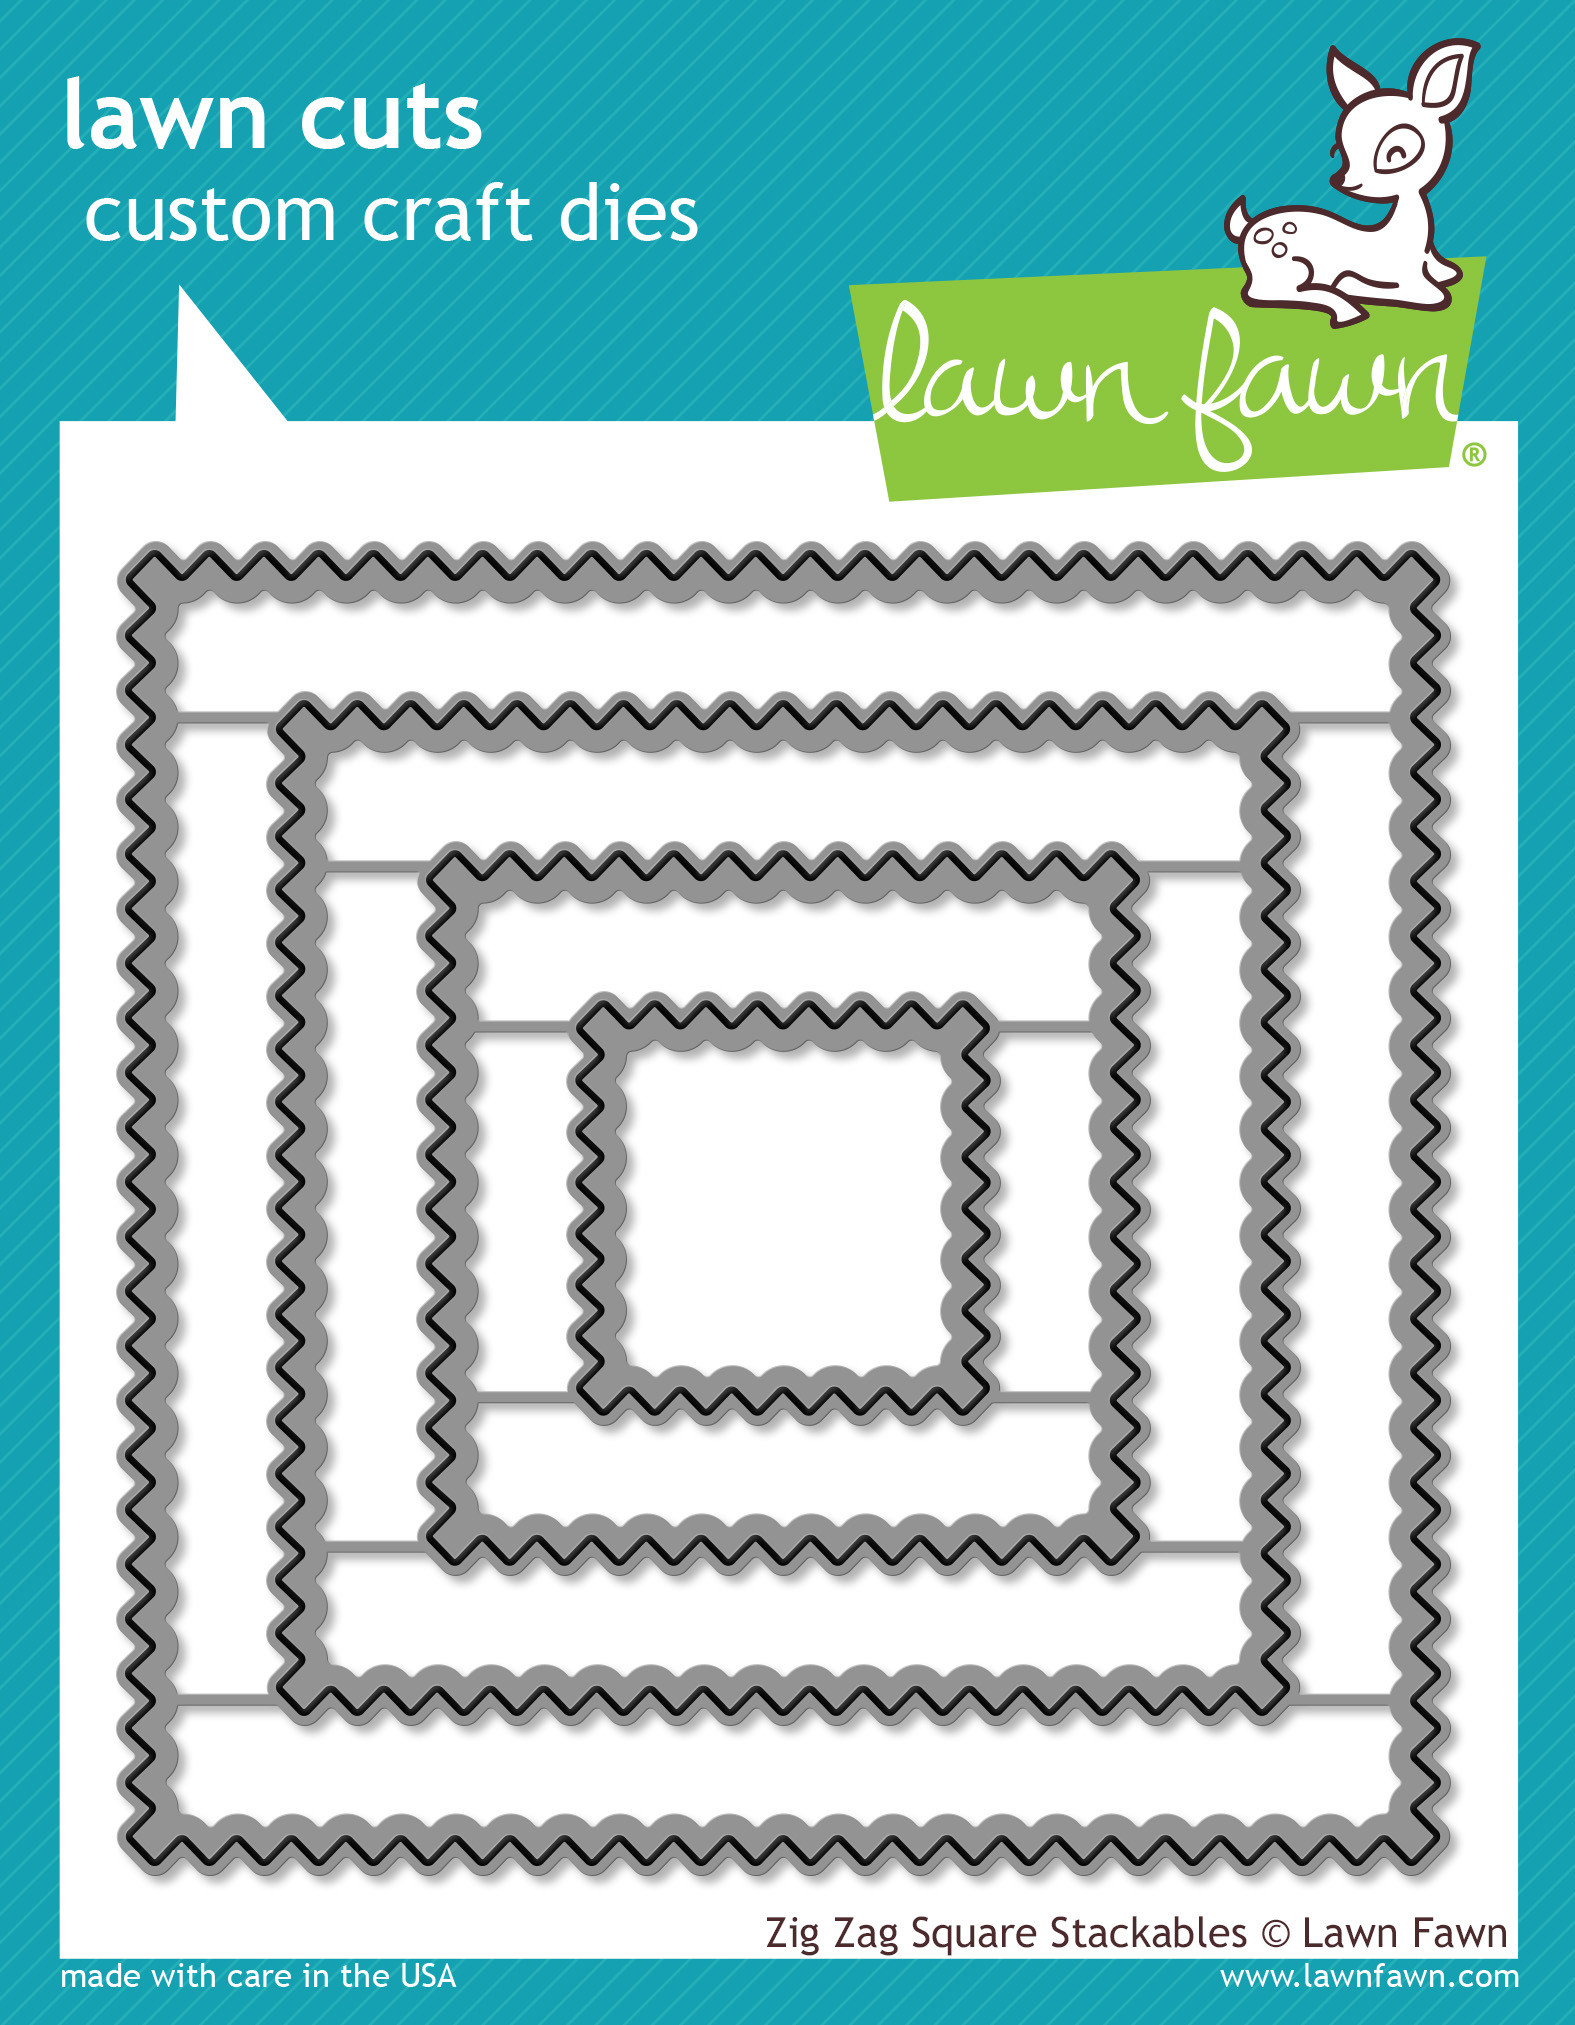 *NEW* - Lawn Fawn - Lawn Cuts - Zig Zag Square Stackables